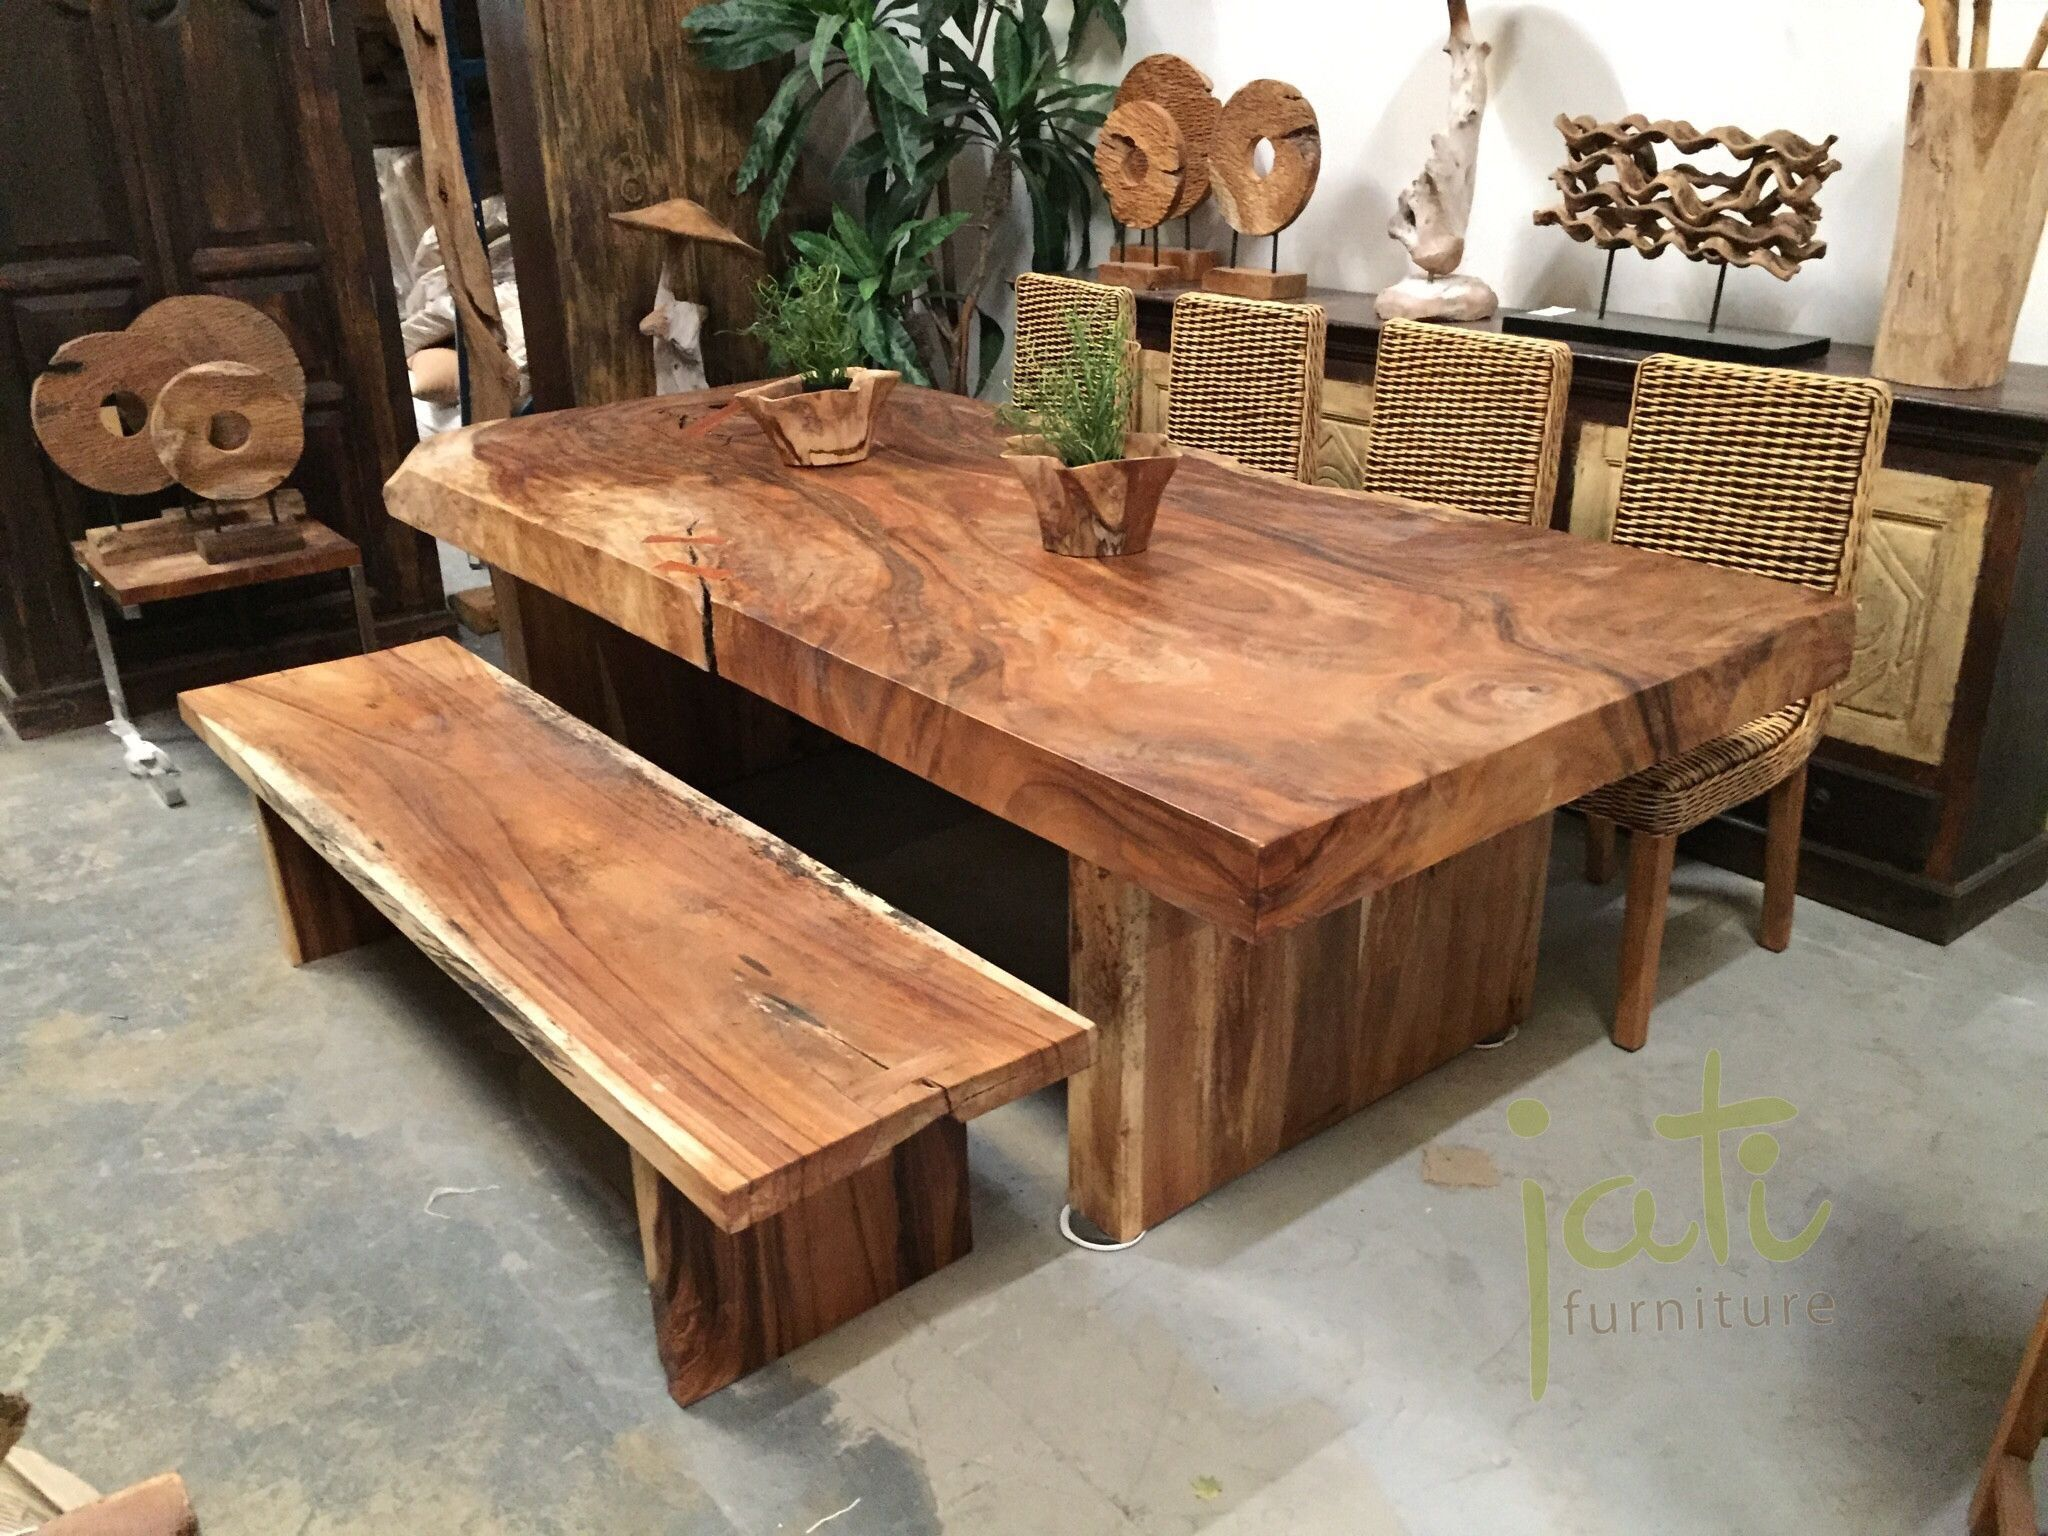 Charmant Solid Wood Table U2013 Root Table   UNIQUE   Log Table   Dining Table   100%  Natural